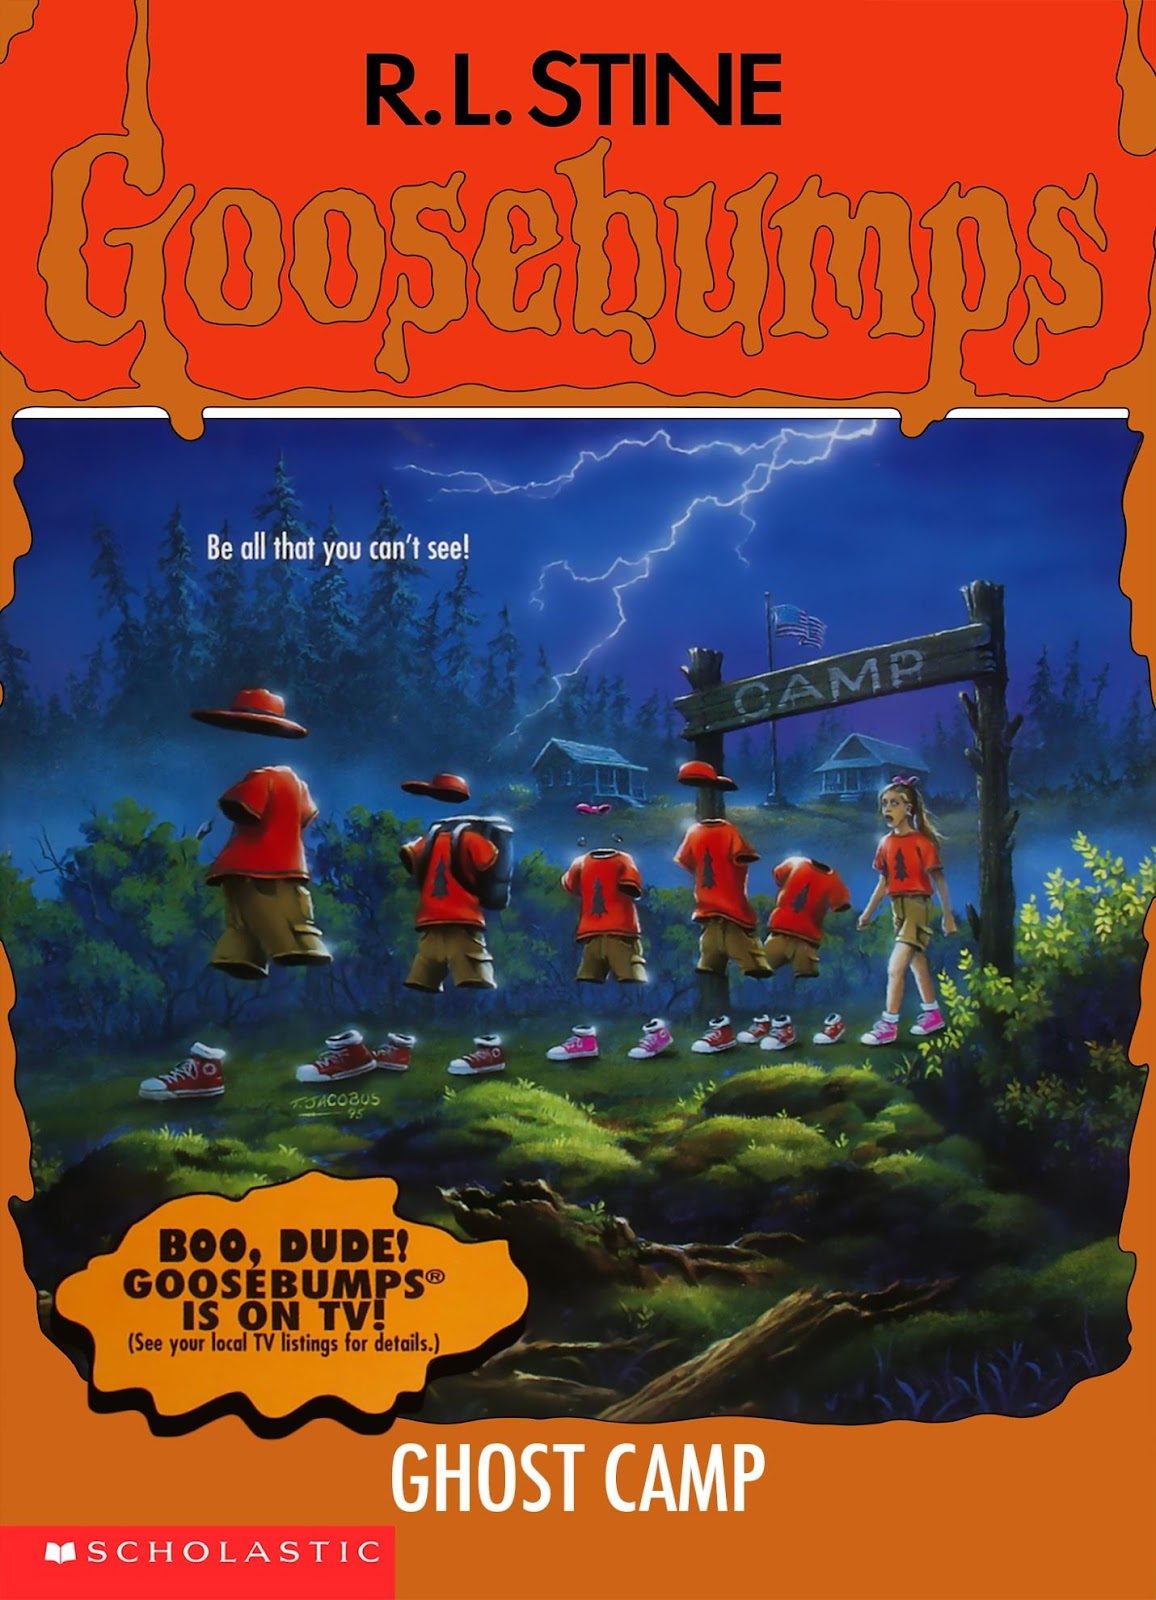 http://vignette2.wikia.nocookie.net/goosebumps/images/7/7a/Ghost_Camp_(Cover).jpg/revision/latest?cb=20160703175737